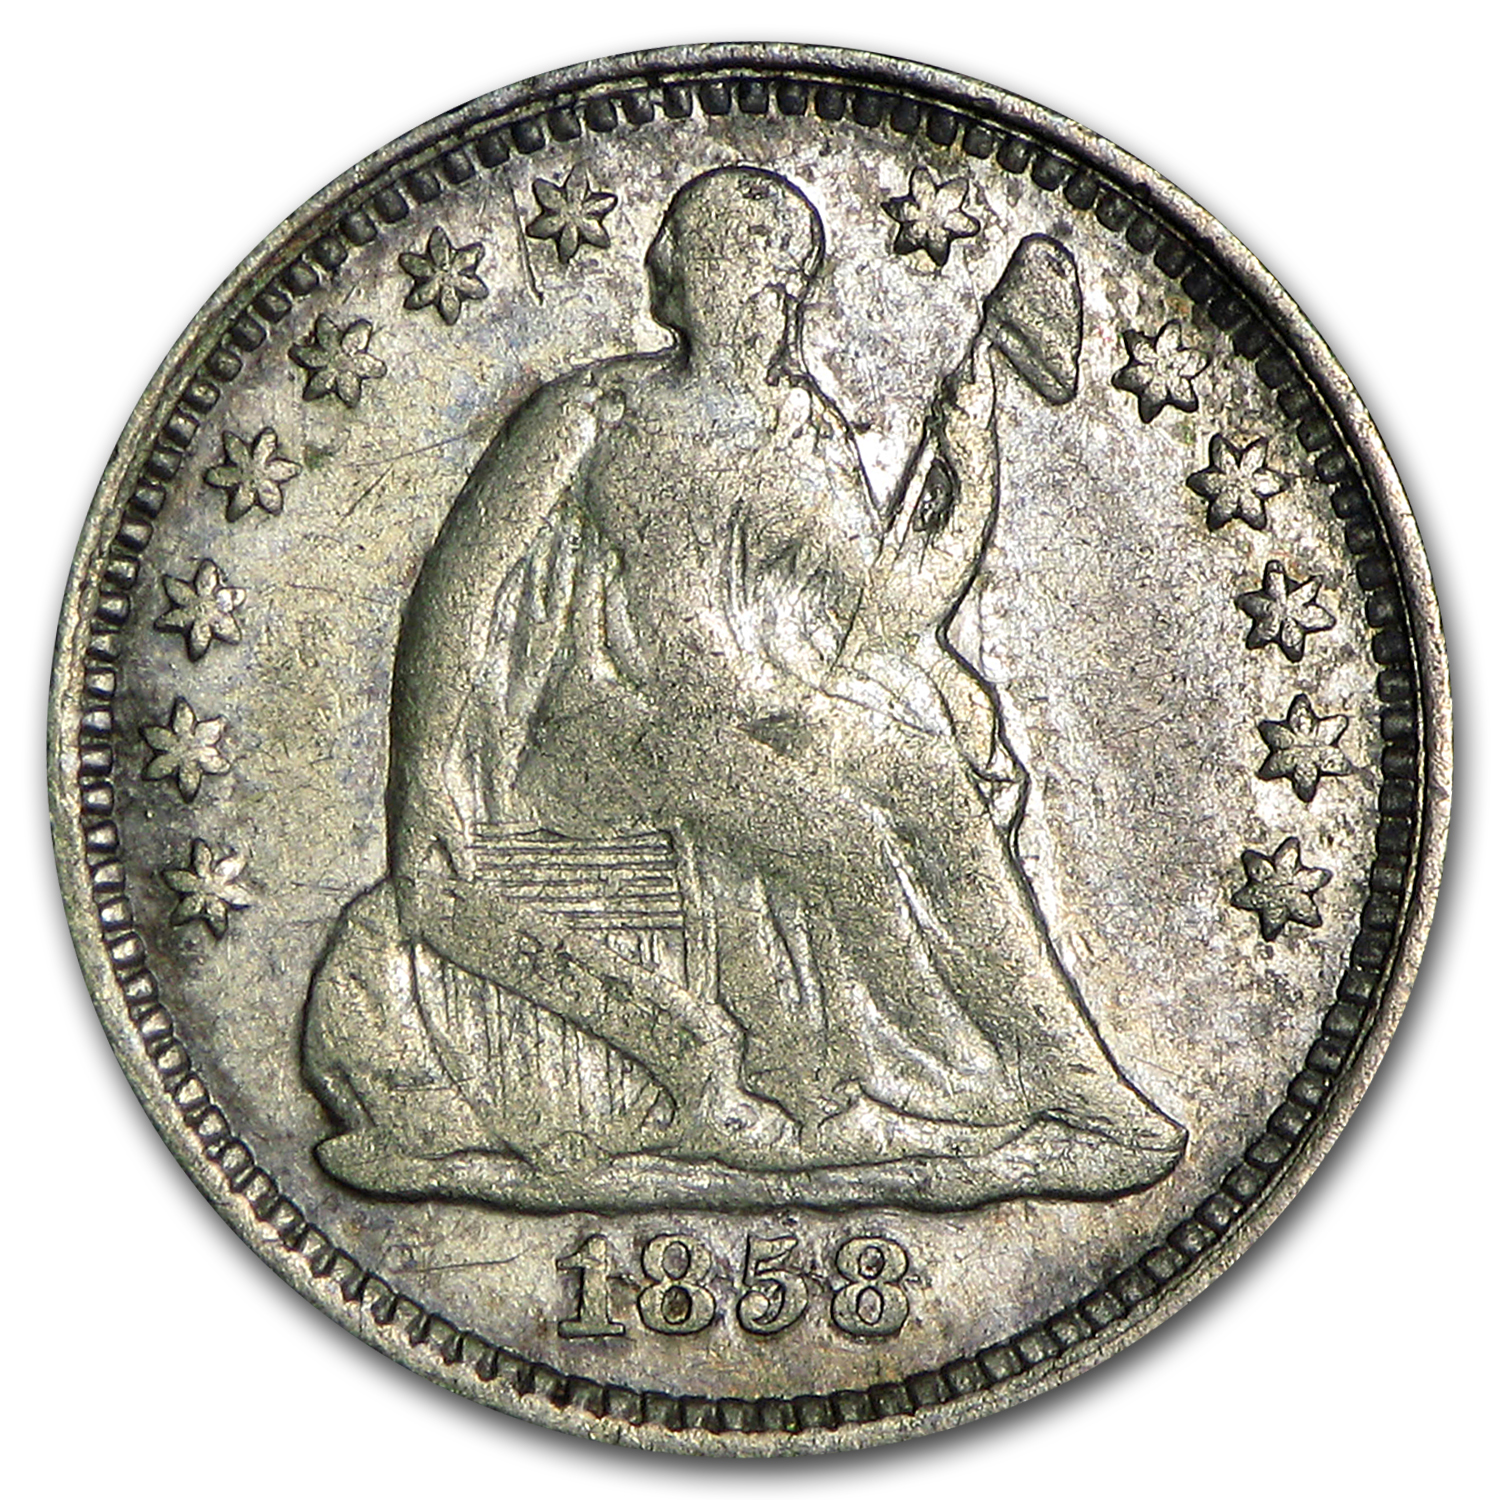 1858/Over Inverted Date Liberty Seated Half Dime VF